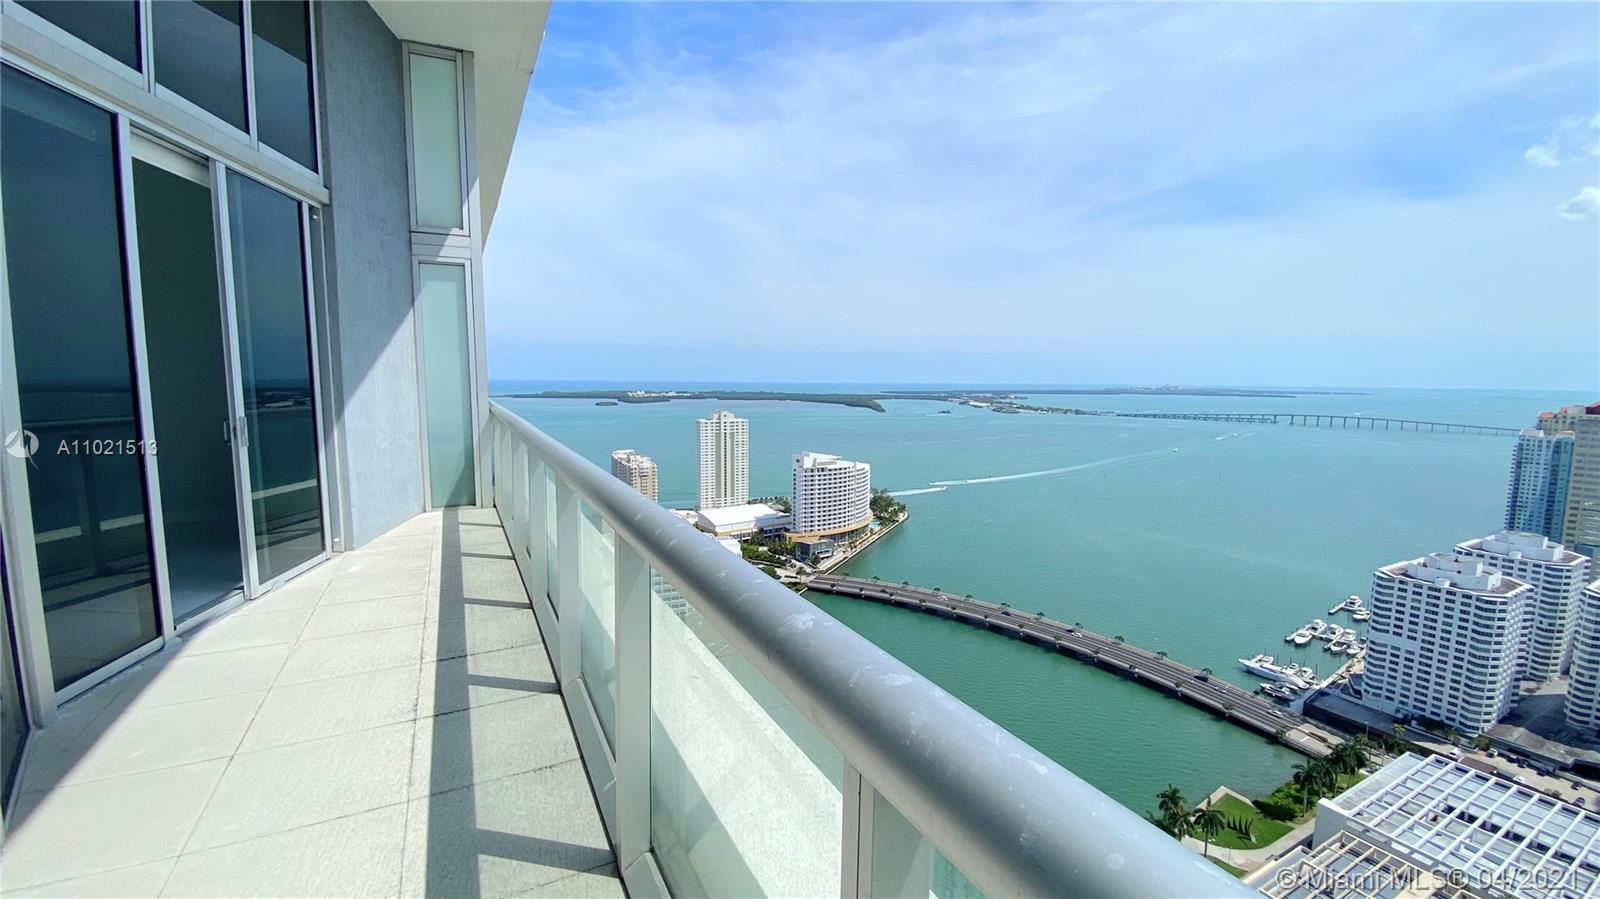 Unique large 1 BD Apartment with HIGH CEILINGS located on the 41th floor. Unobstructed Bay View and city view. In pristine condition. Philip Stark interior design & the best amenities in Brickell including a brand new pool deck, beautiful spa, plunge pools, state-of-the-art fitness center, saunas, steam rooms, game rooms, spinning room, movie theater, 3 restaurant in the premises and more. Walking to the mall at Brickell City Centre.